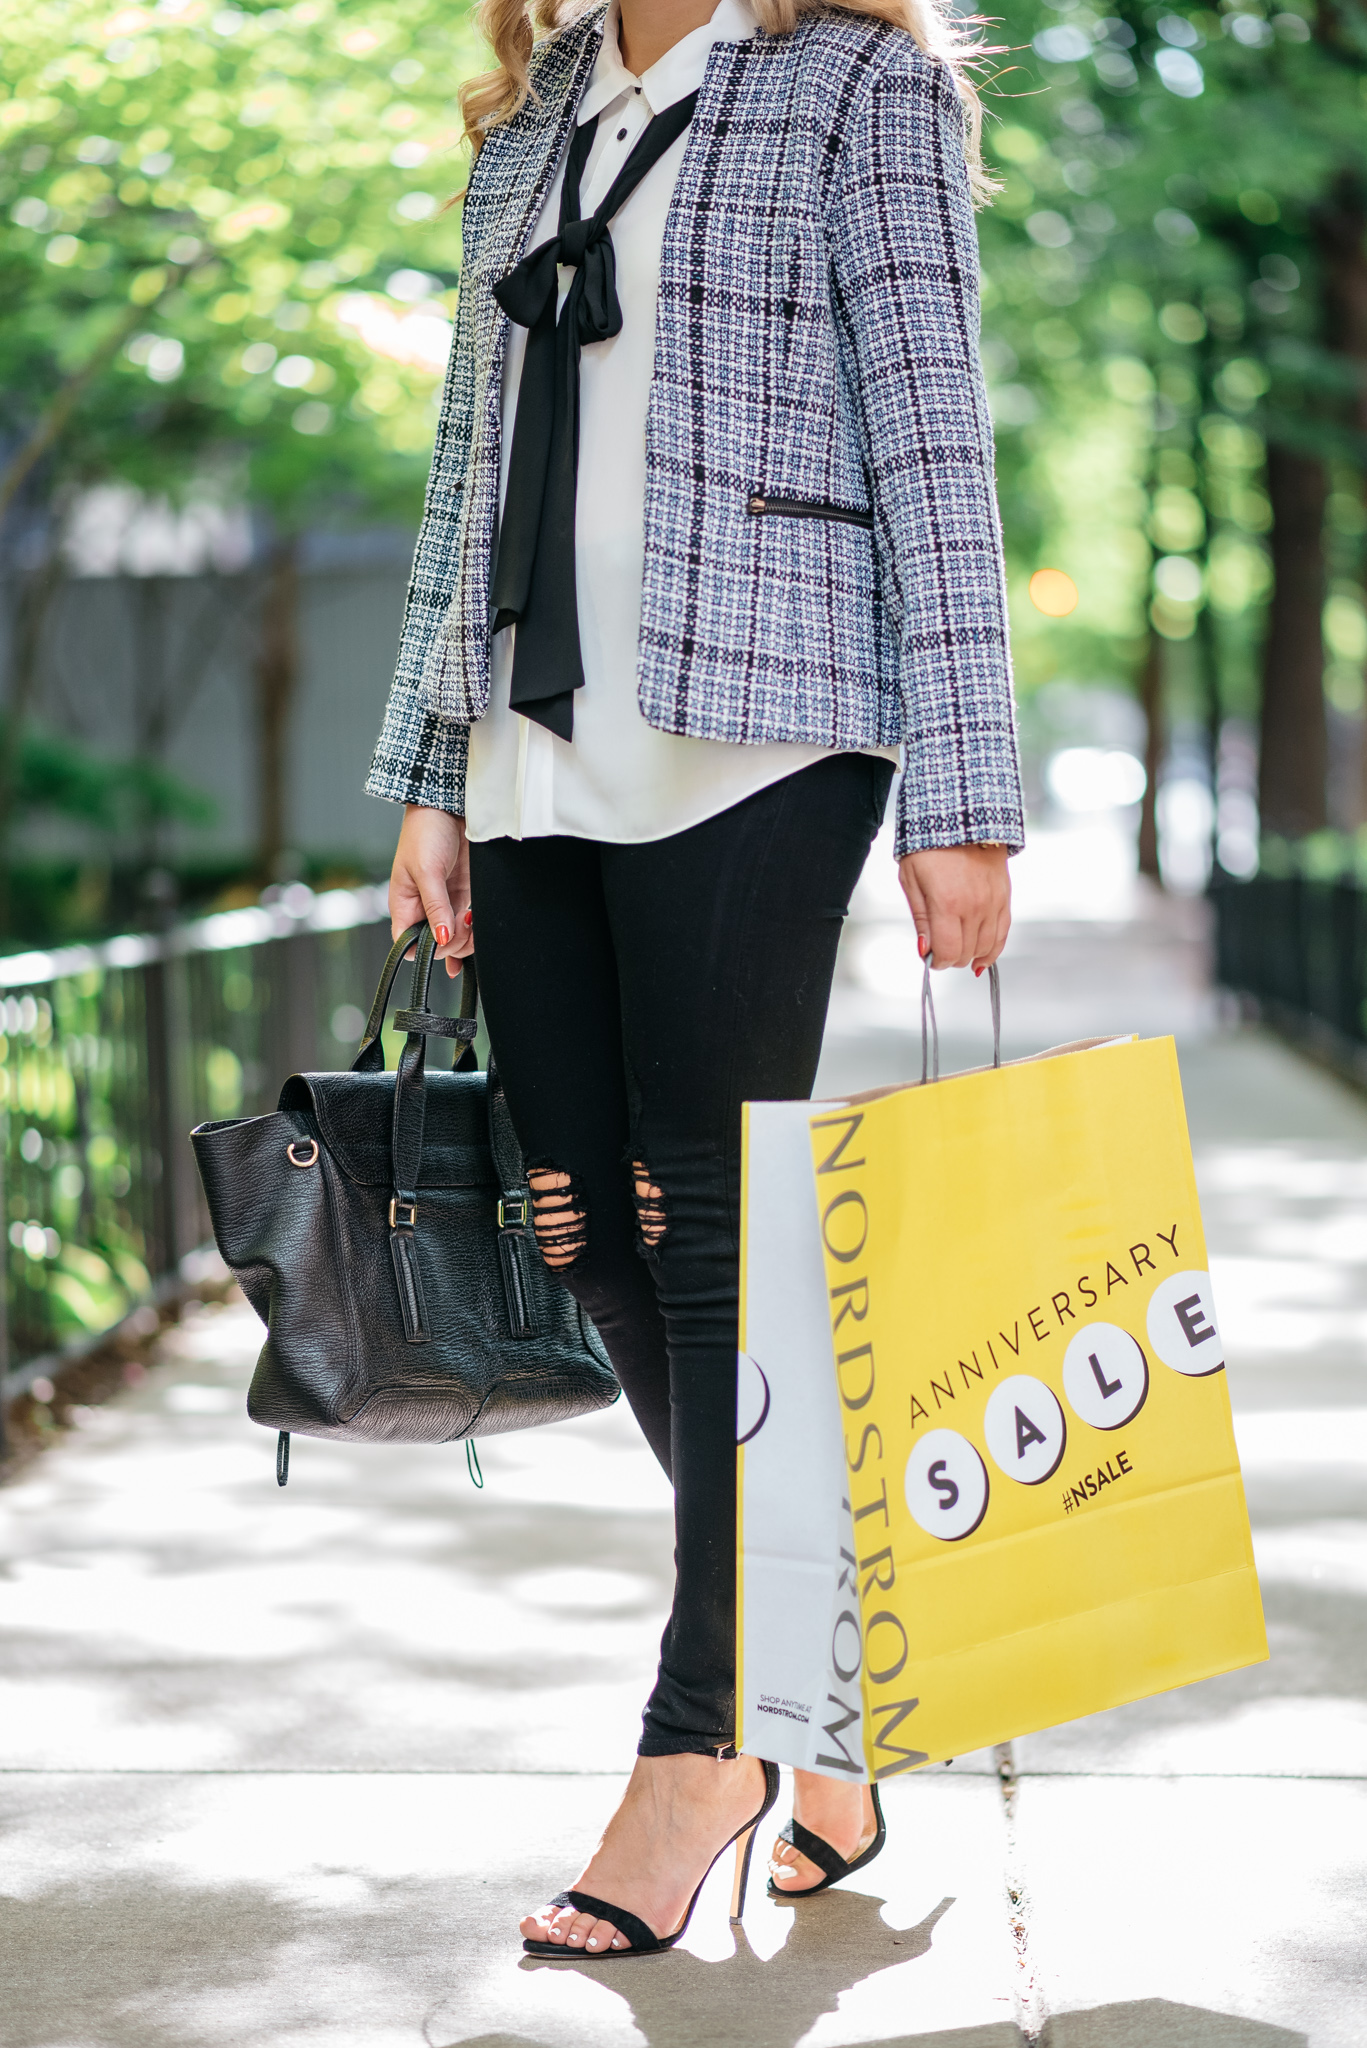 Bows & Sequins' favorite fall finds from the Nordstrom Anniversary Sale... Up to 40% off!